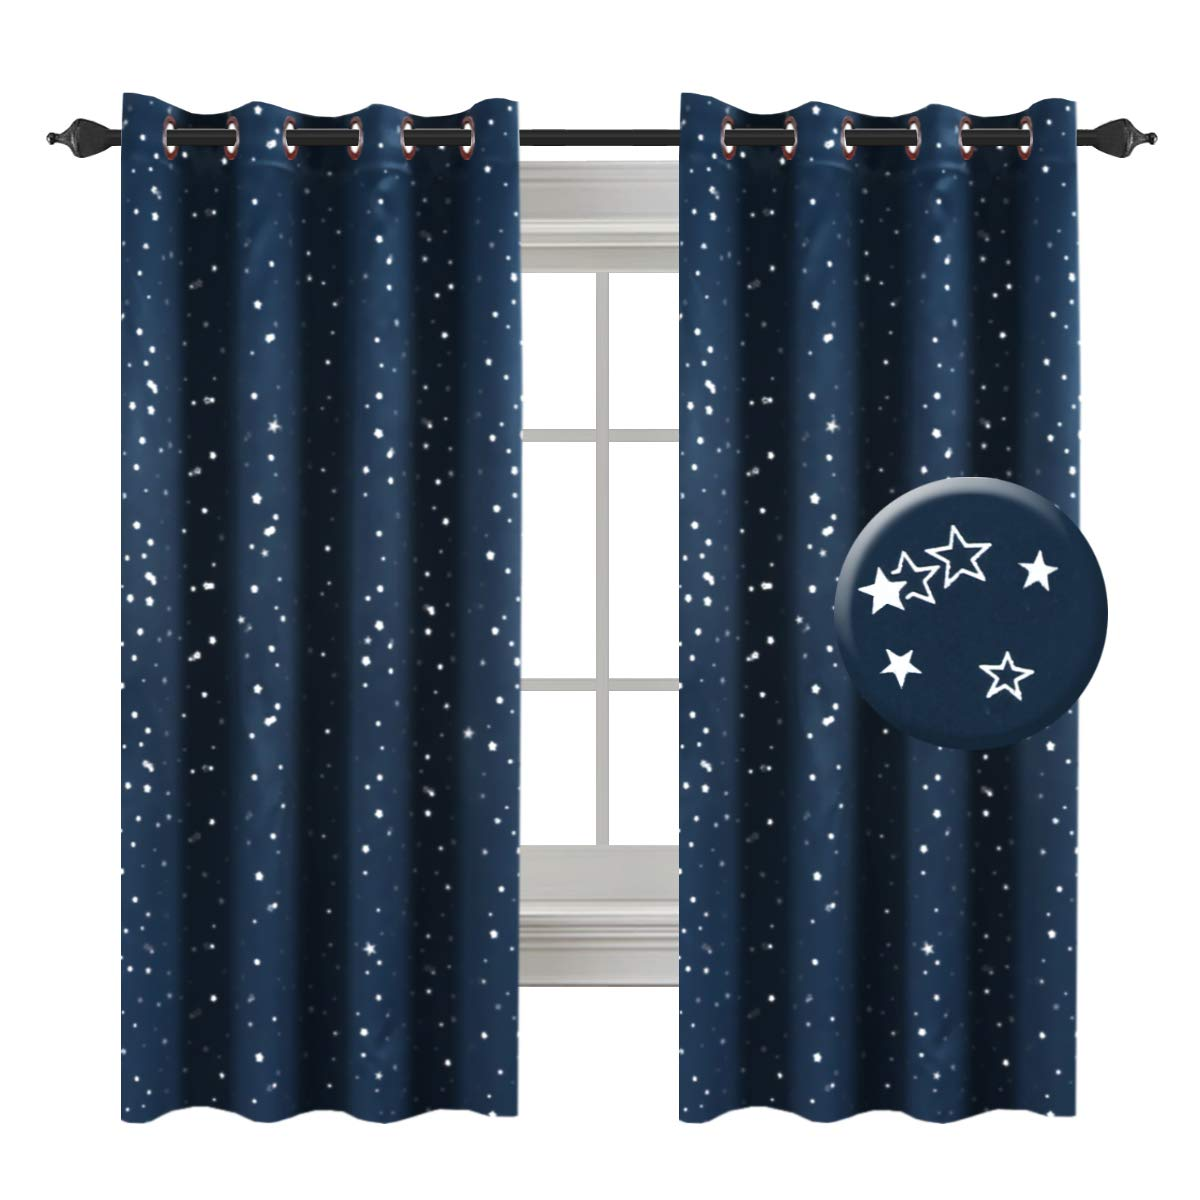 H.VERSAILTEX Full Blackout Thermal Insulated Curtain Panels Star Curtains Boys Room Grommet Star Curtains Kids Room, 52 x 63 - inch - 1 Panel